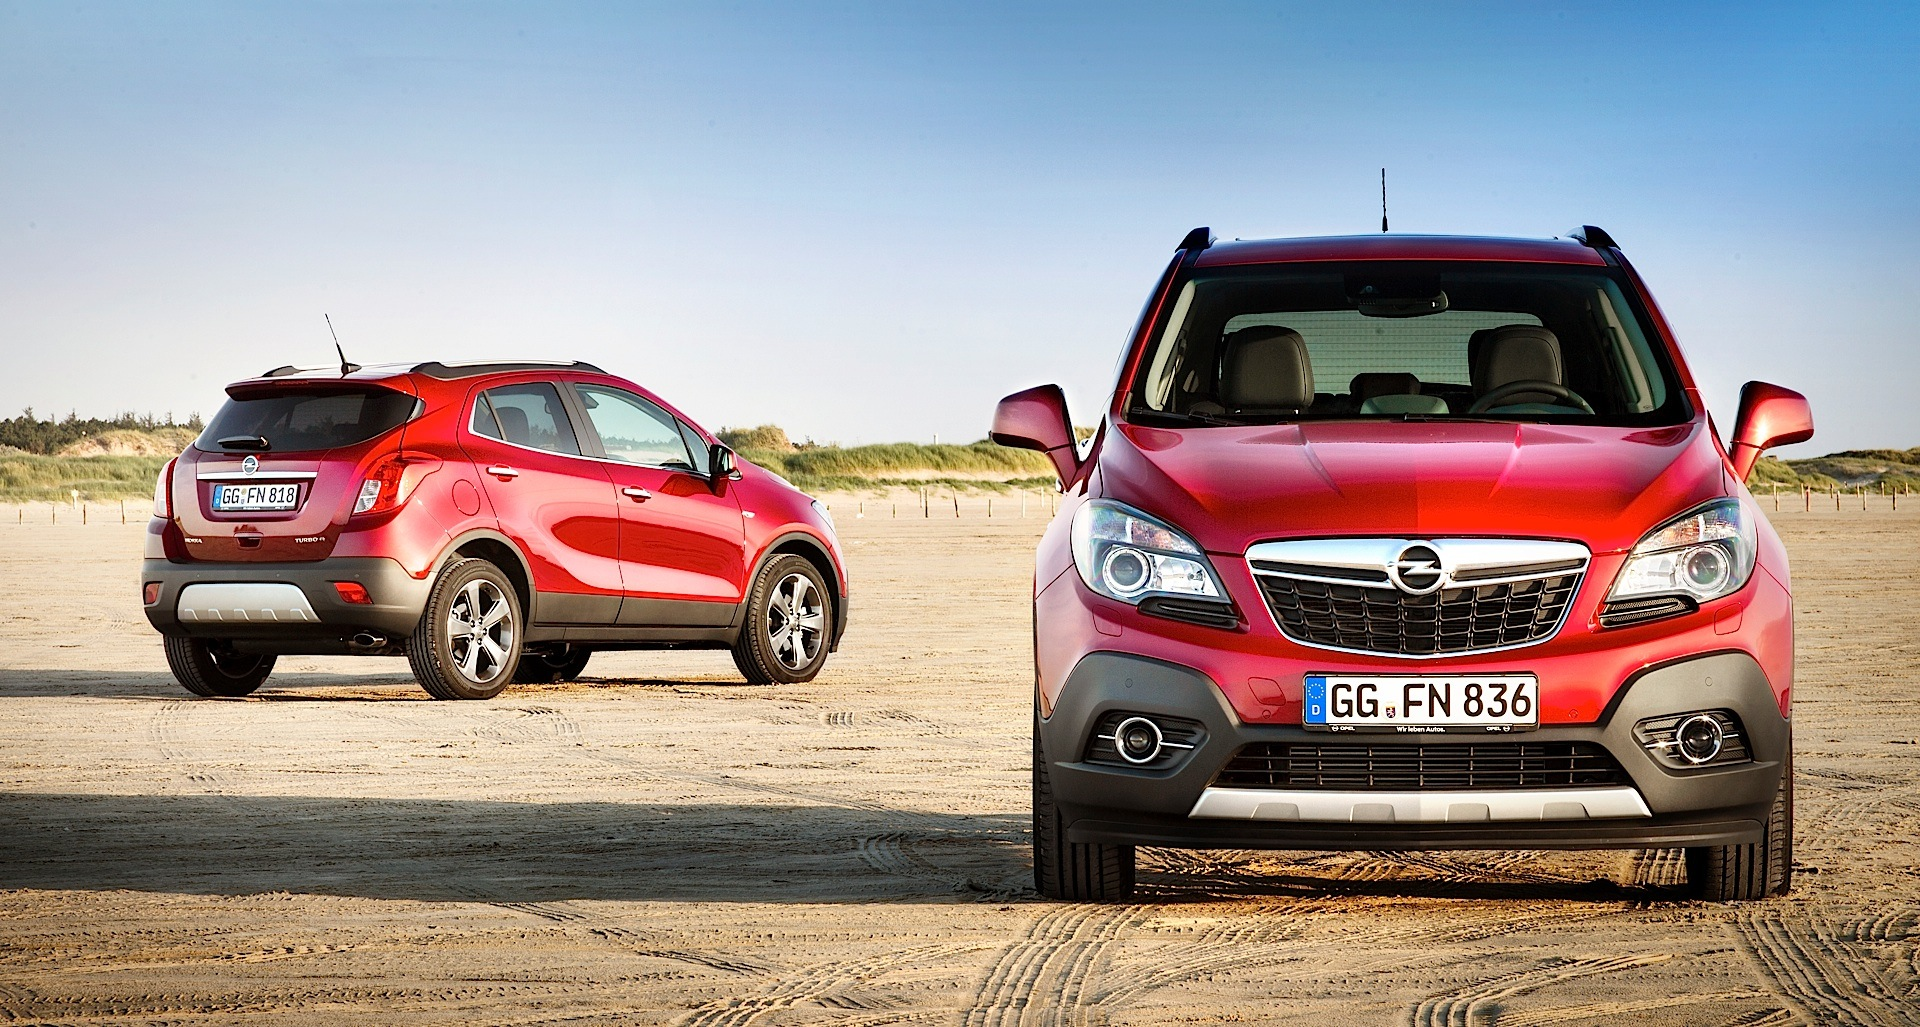 opel sales rise in first three months of 2015 backed by mokka demand autoevolution. Black Bedroom Furniture Sets. Home Design Ideas